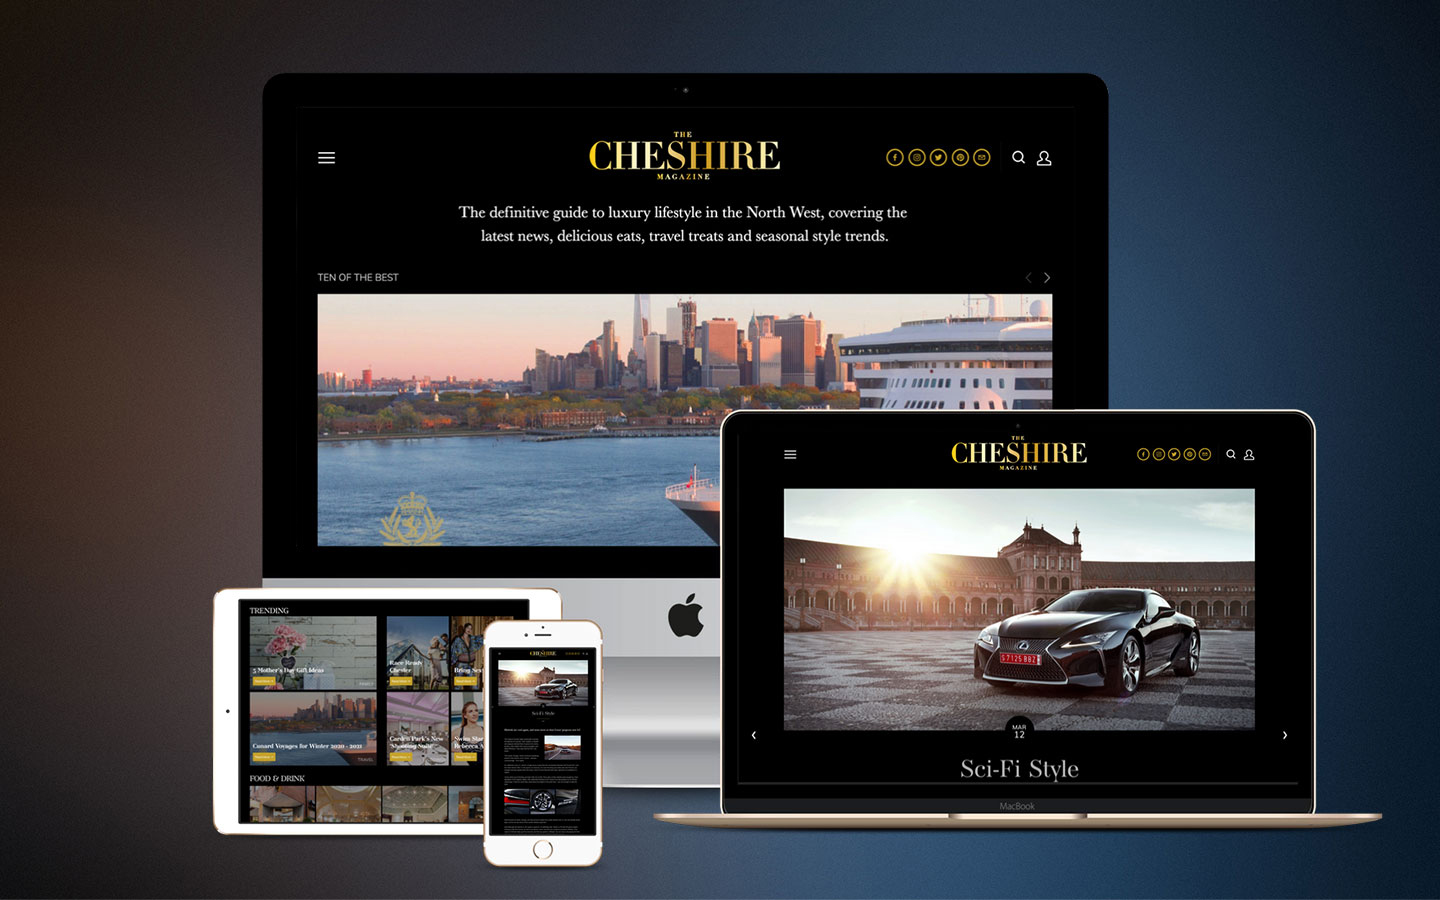 1 x Guest Blog Post + Social Syndication-The CHESHIRE Magazine | The Luxury  Lifestyle Magazine for the North West-1 x Guest Blog Post + Social